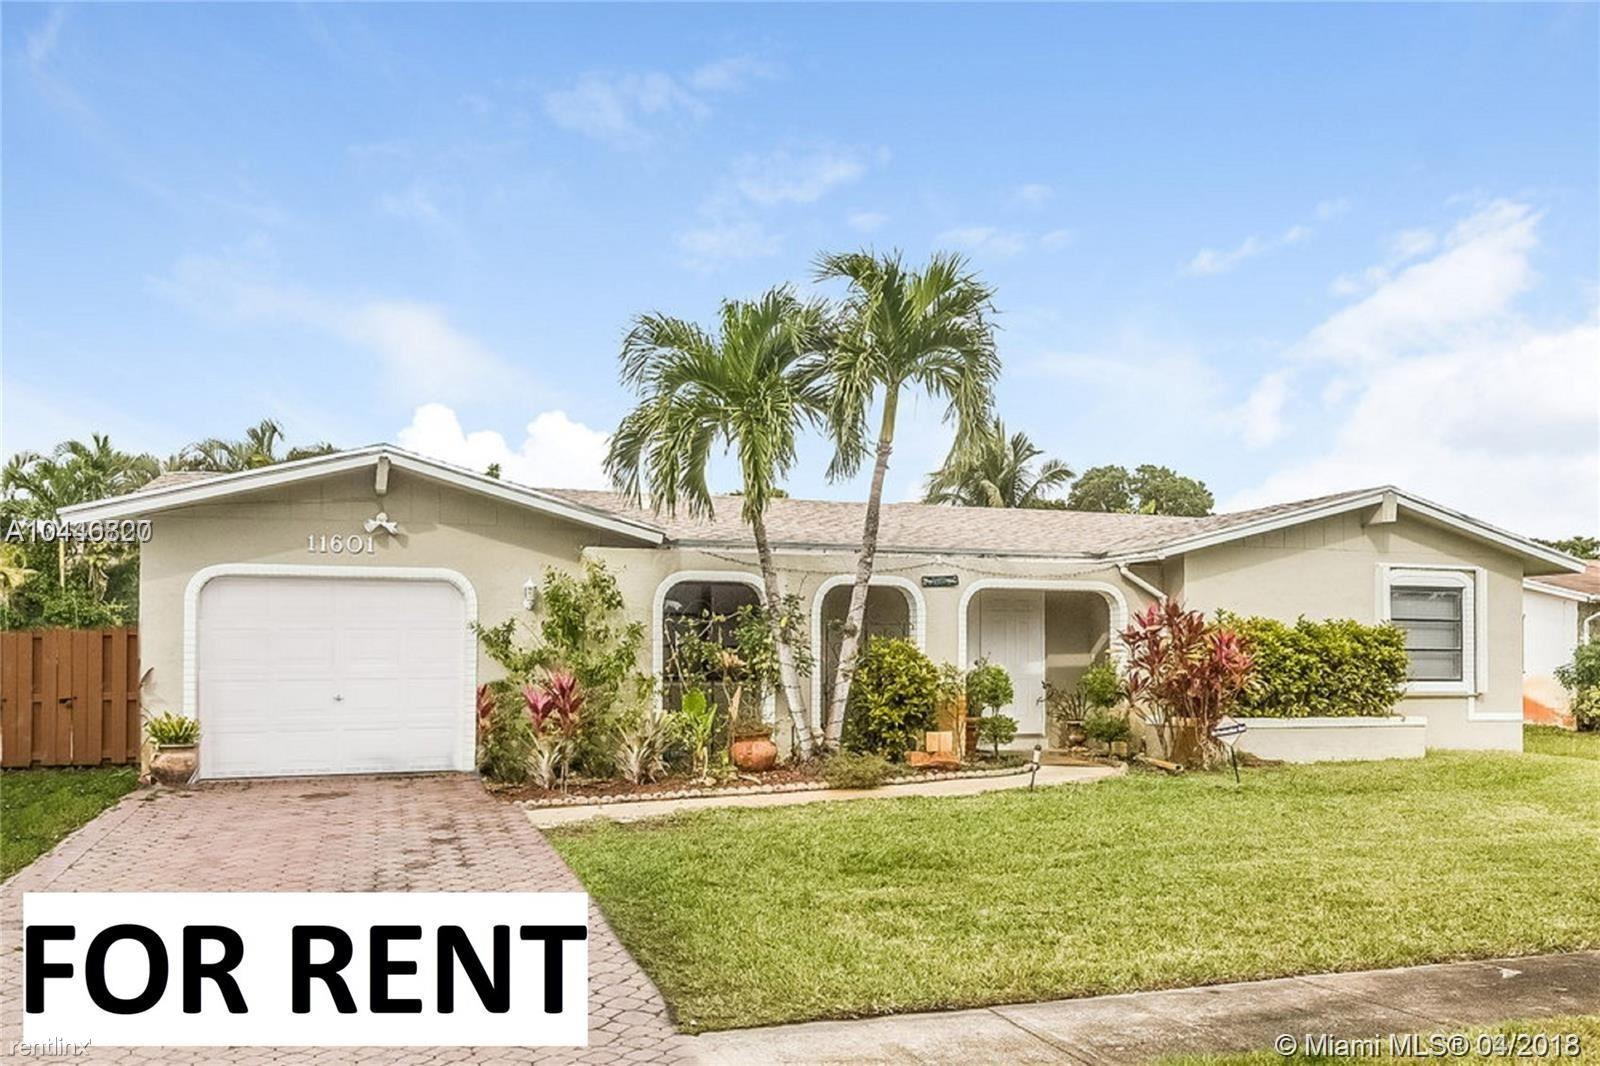 11601 nw 14th ct for rent pembroke pines fl trulia